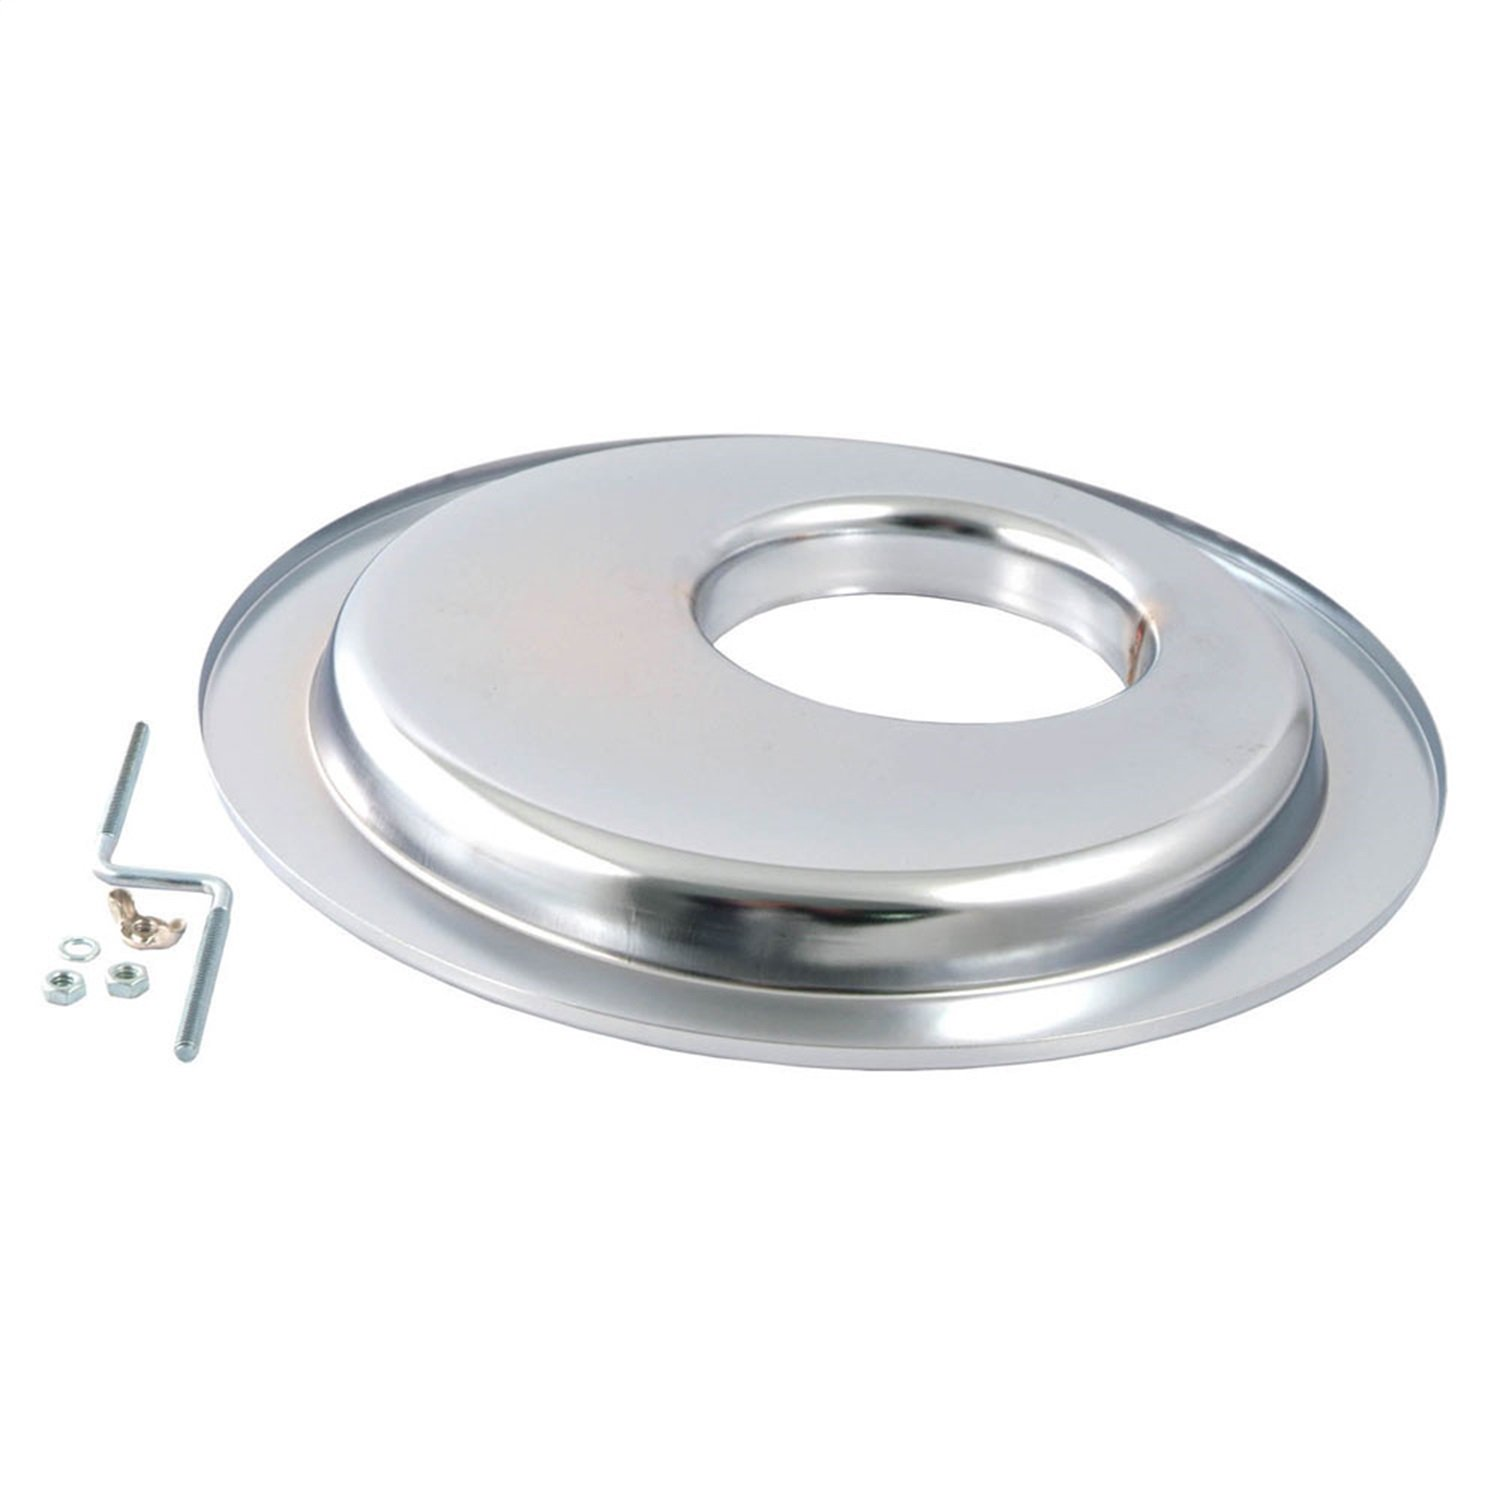 Spectre Performance 4768 14 Offset Air Cleaner Base with Stud SPE-4768